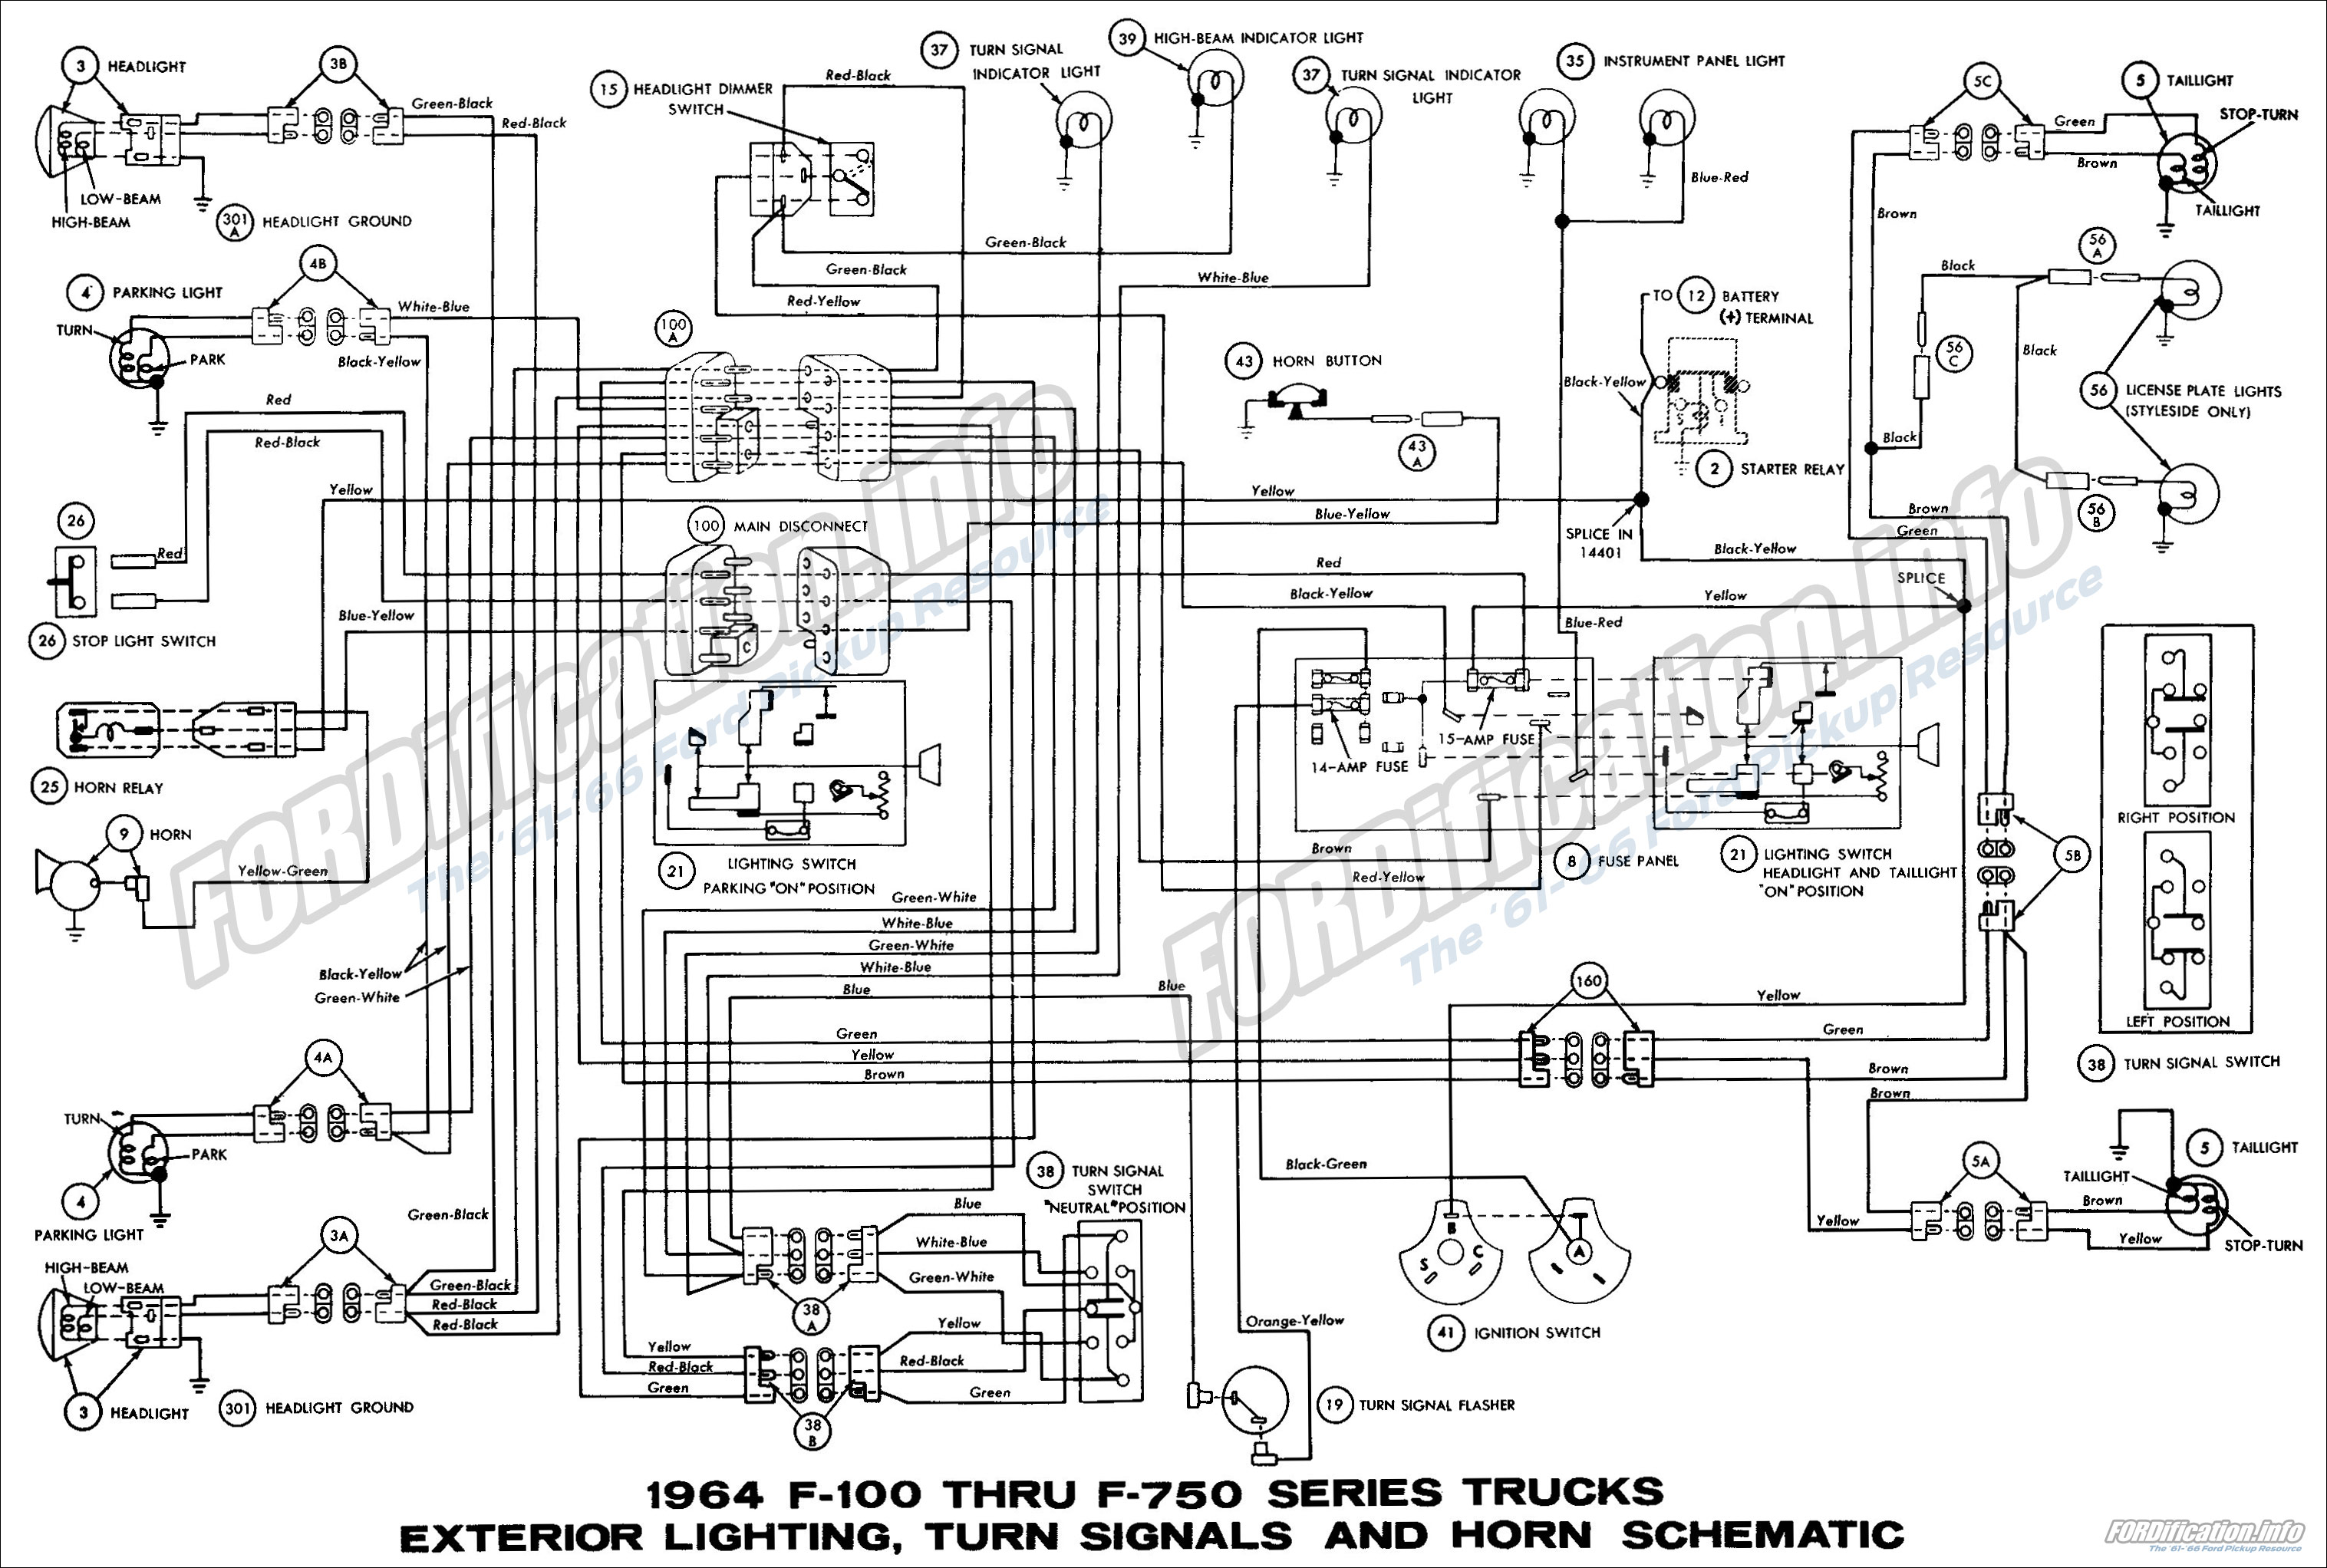 Ford F750 Wiring - Schema Wiring Diagrams F Wiring Diagrams For on